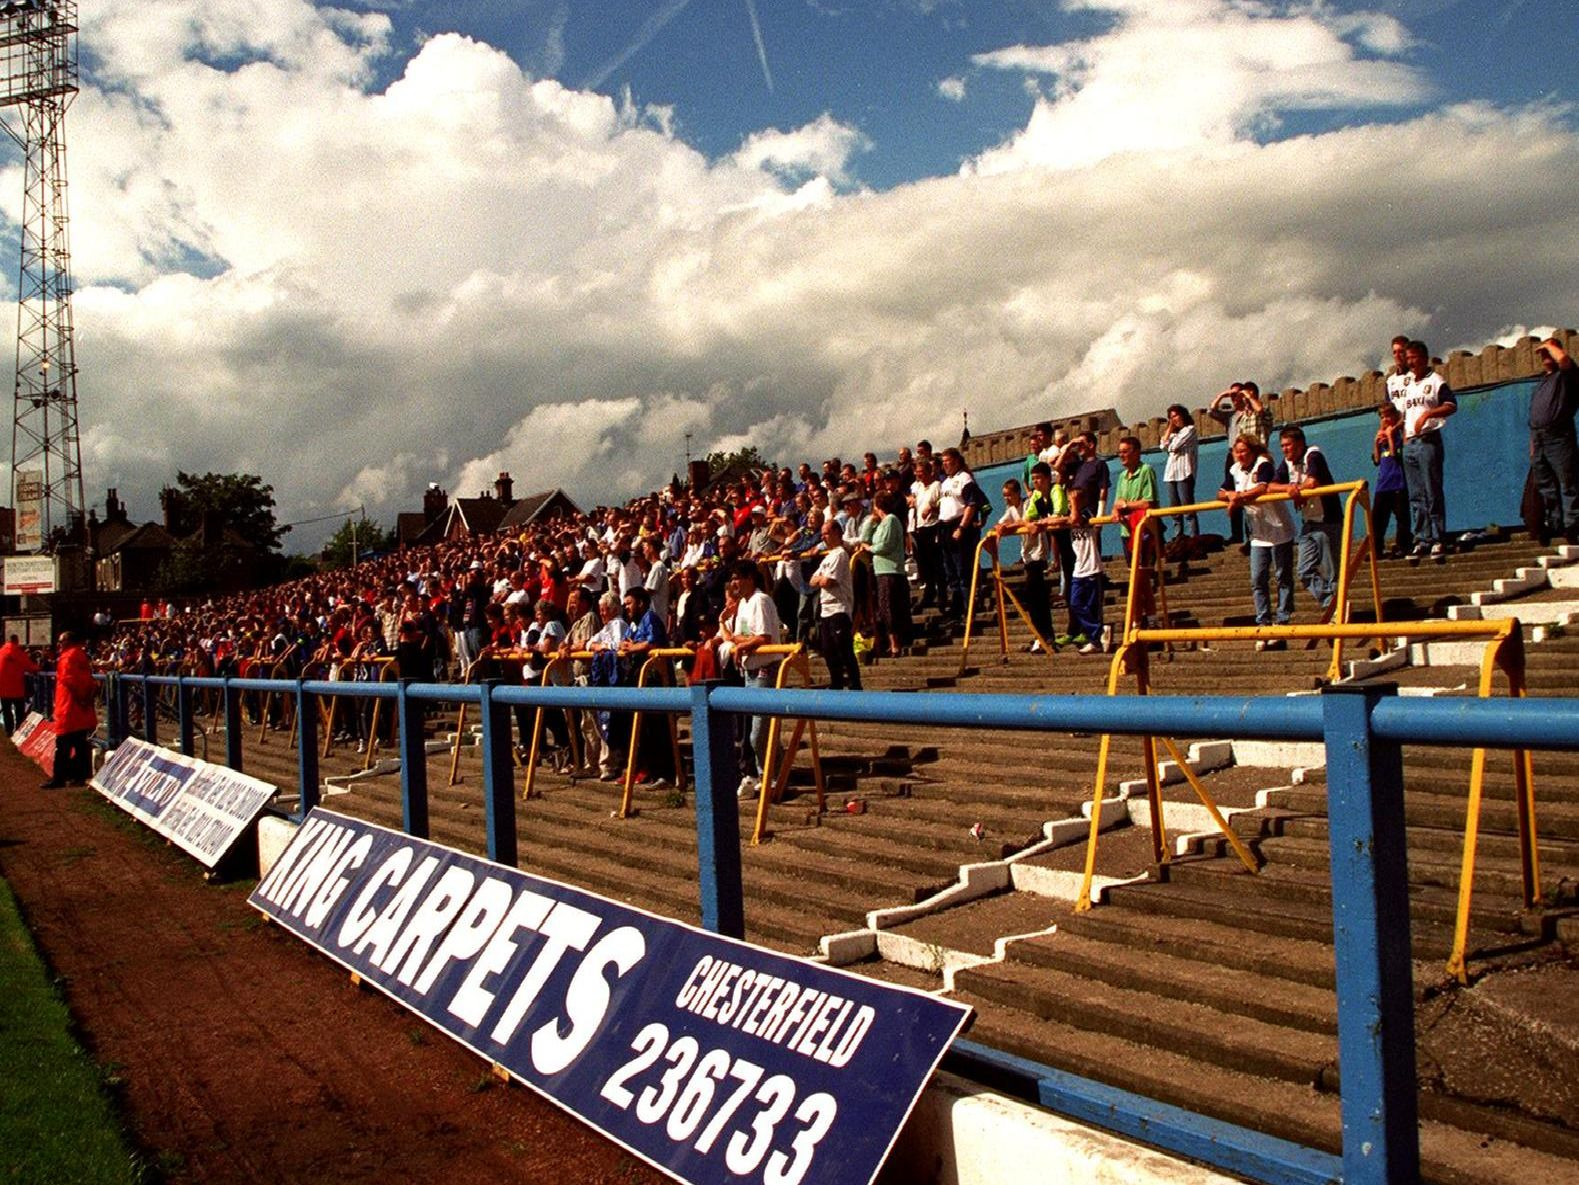 Chesterfield v Preston, Old uncovered standing end at Chesterfields old ground.